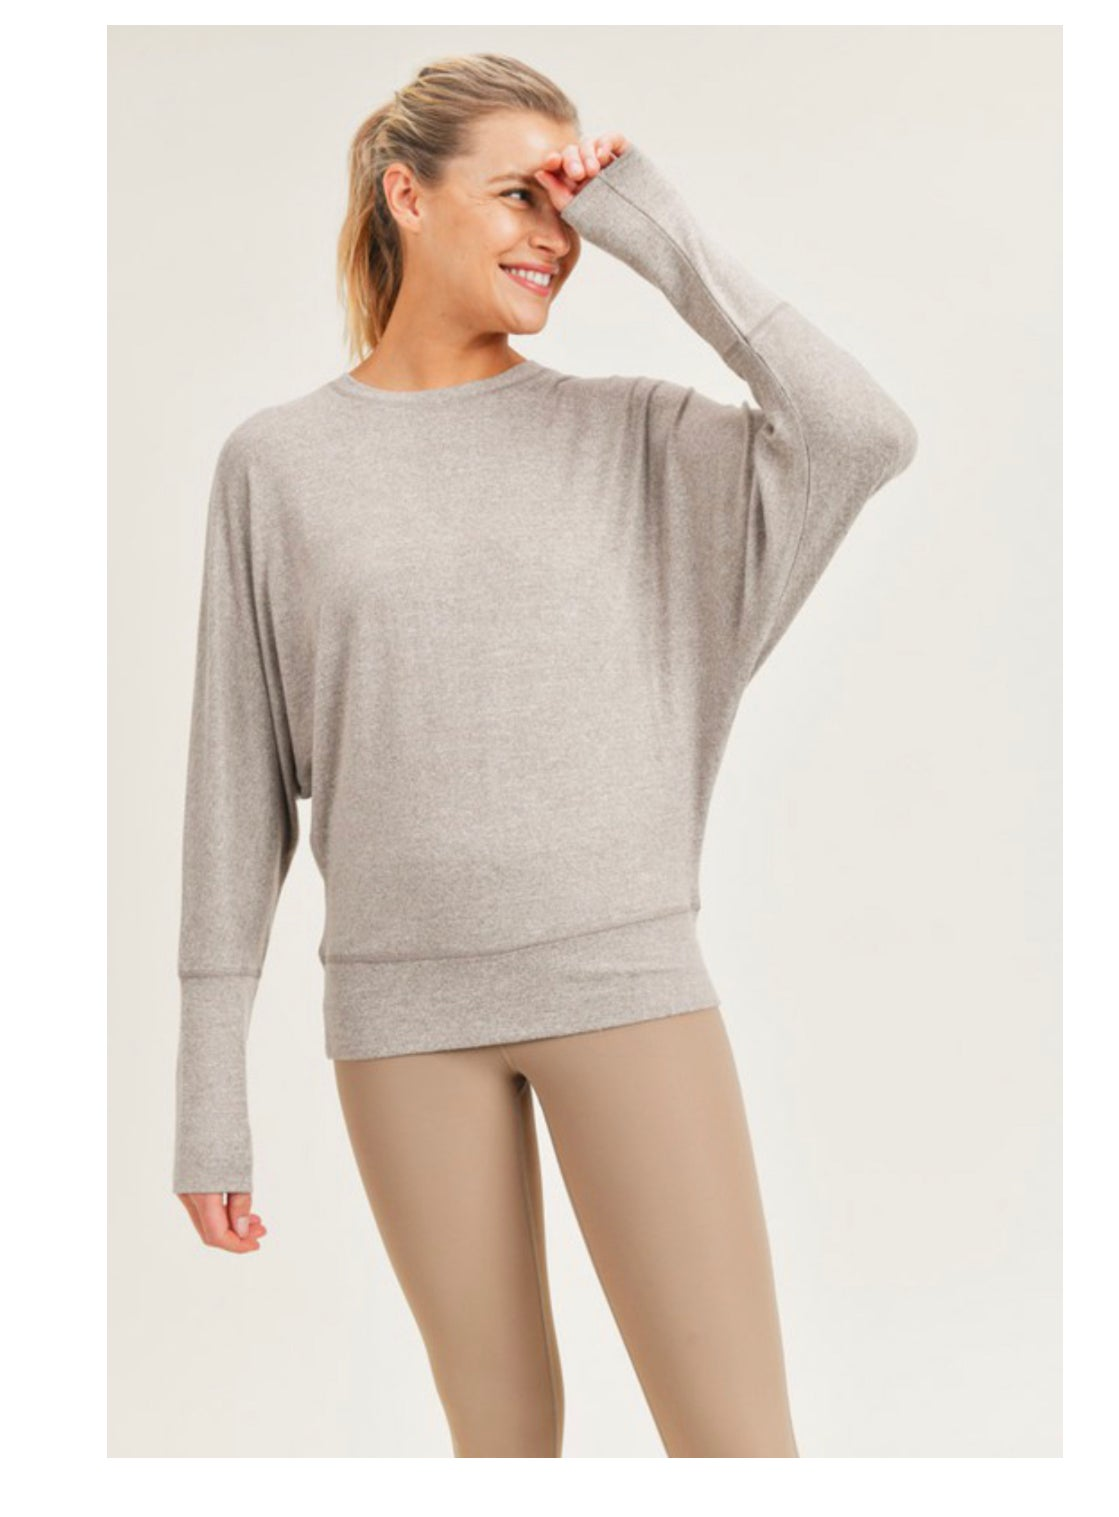 Image of Dolman Sleeve Top - 3 Colors